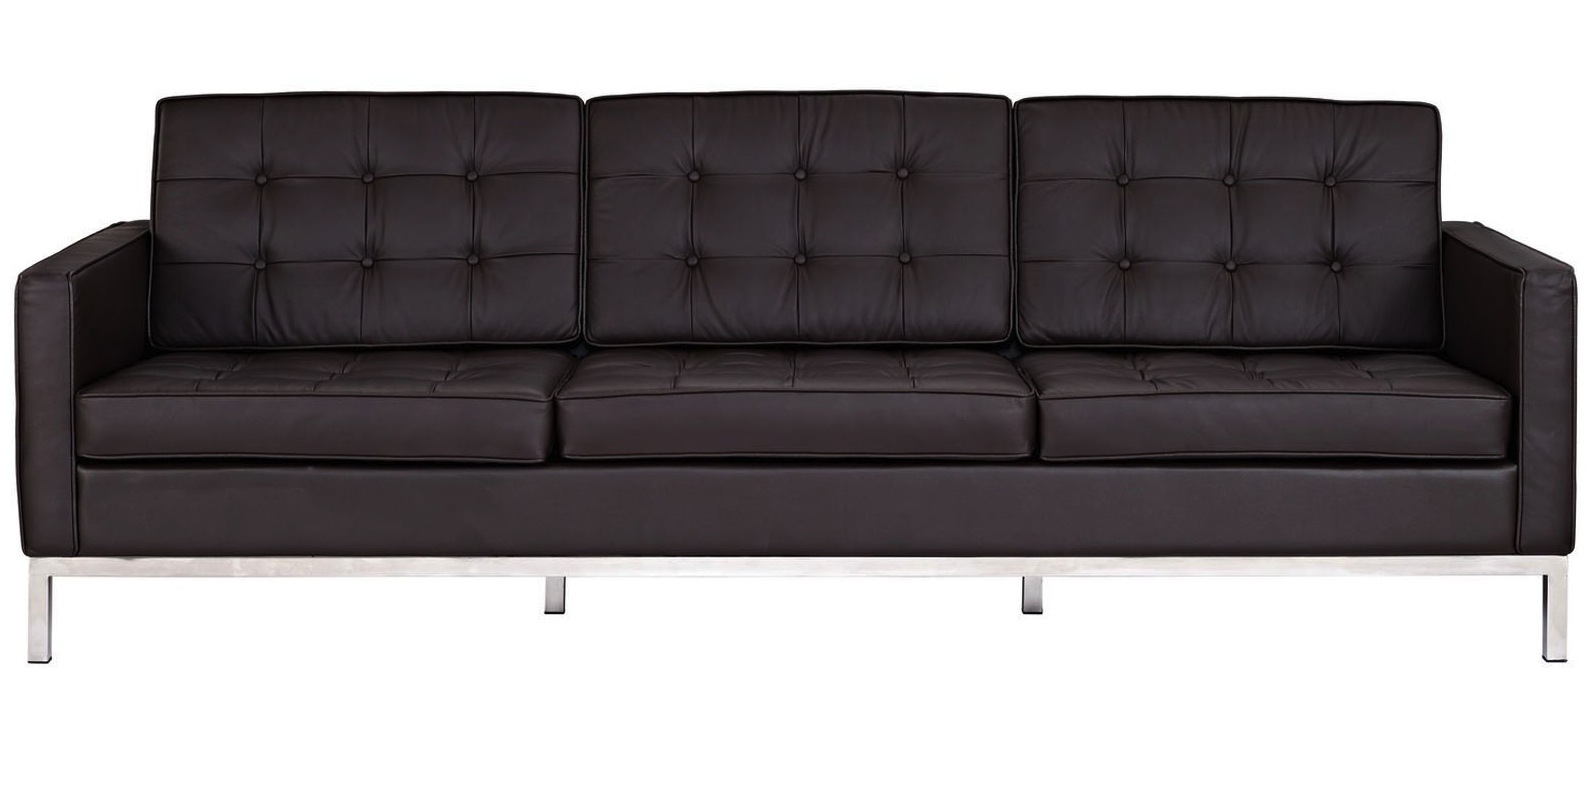 Merveilleux ... Florence Sofa In Brown Leather